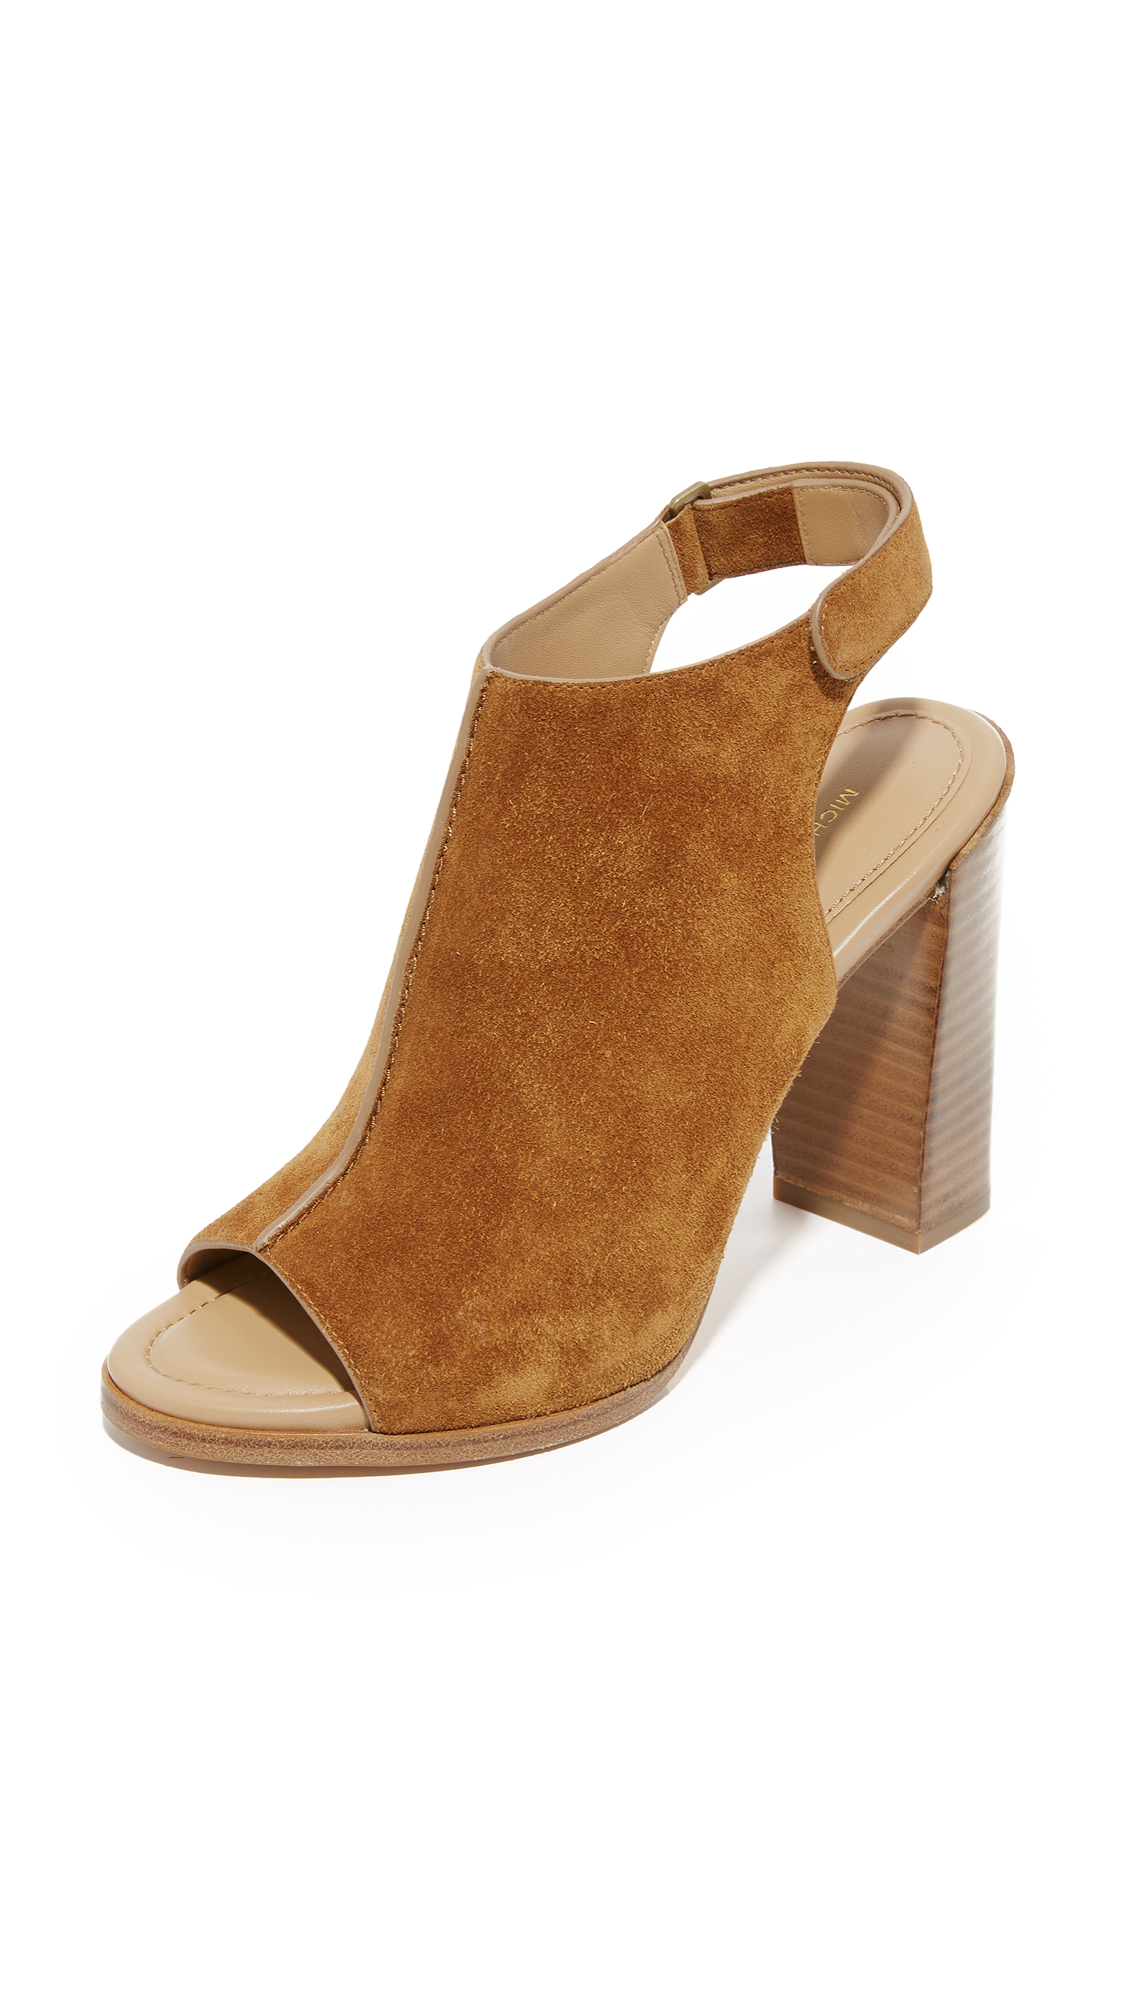 Michael Kors Collection Maeve Open Toe Booties - Luggage